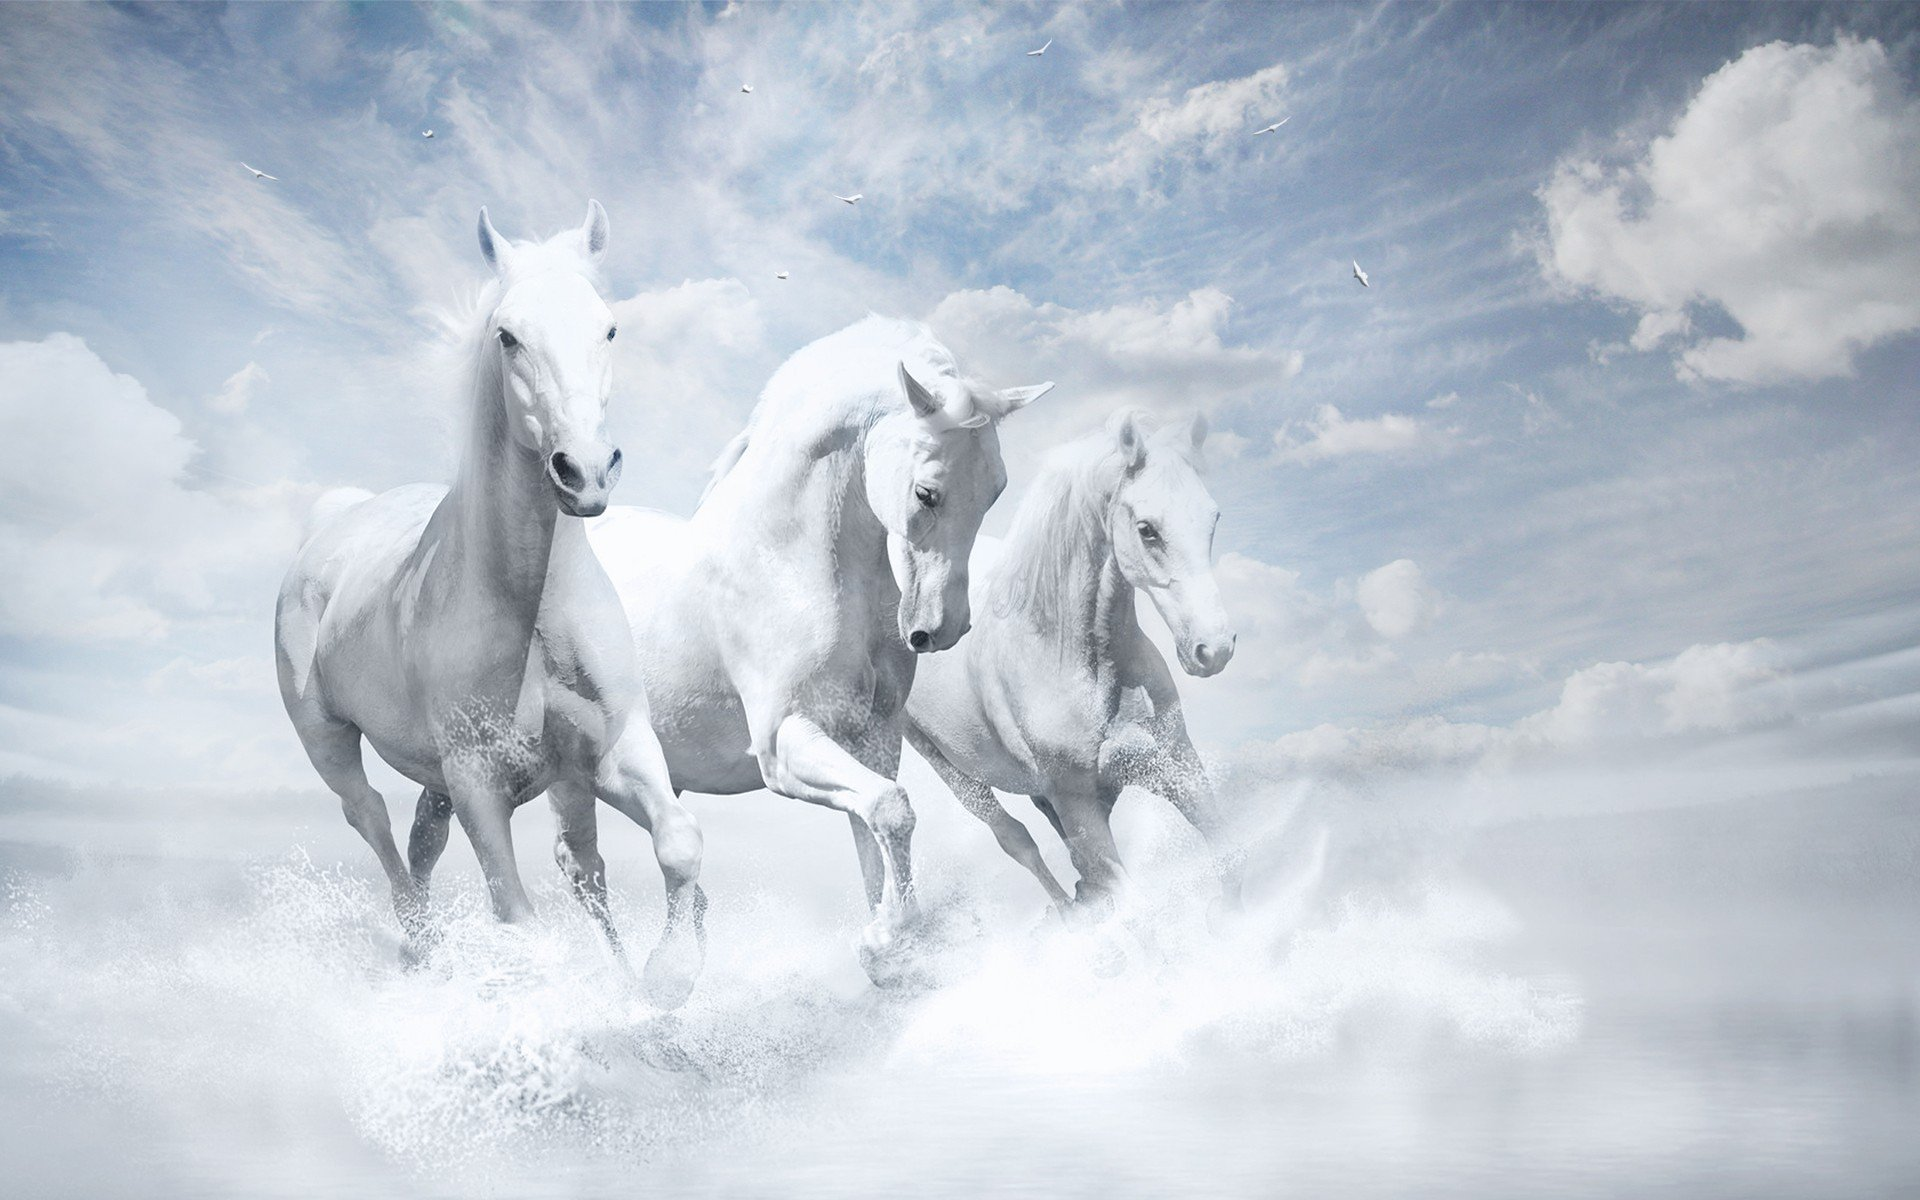 2048x1152 white horses hd 2048x1152 resolution hd 4k wallpapers white horses hd 2048x1152 resolution altavistaventures Gallery